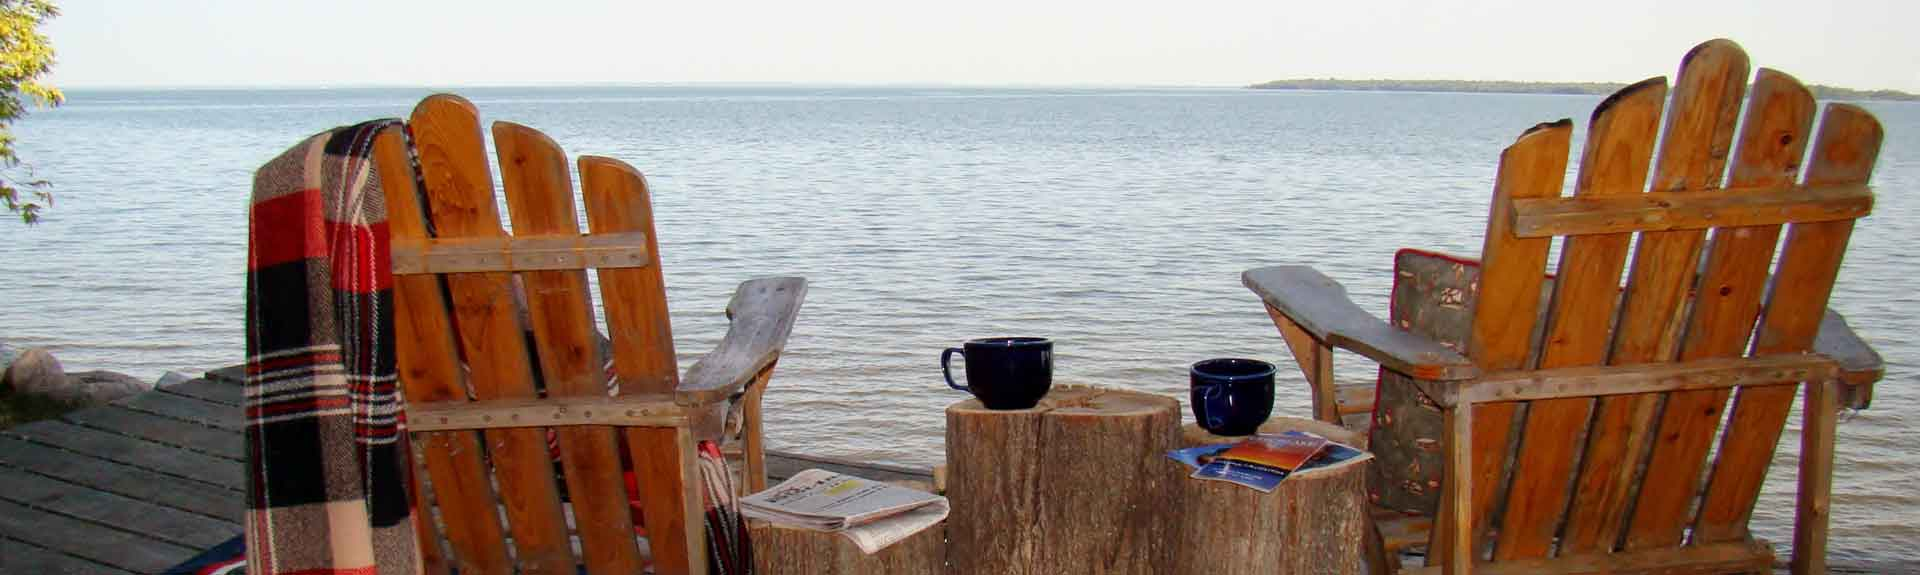 Relax on the lakefront during your stay at Adventure North Resort